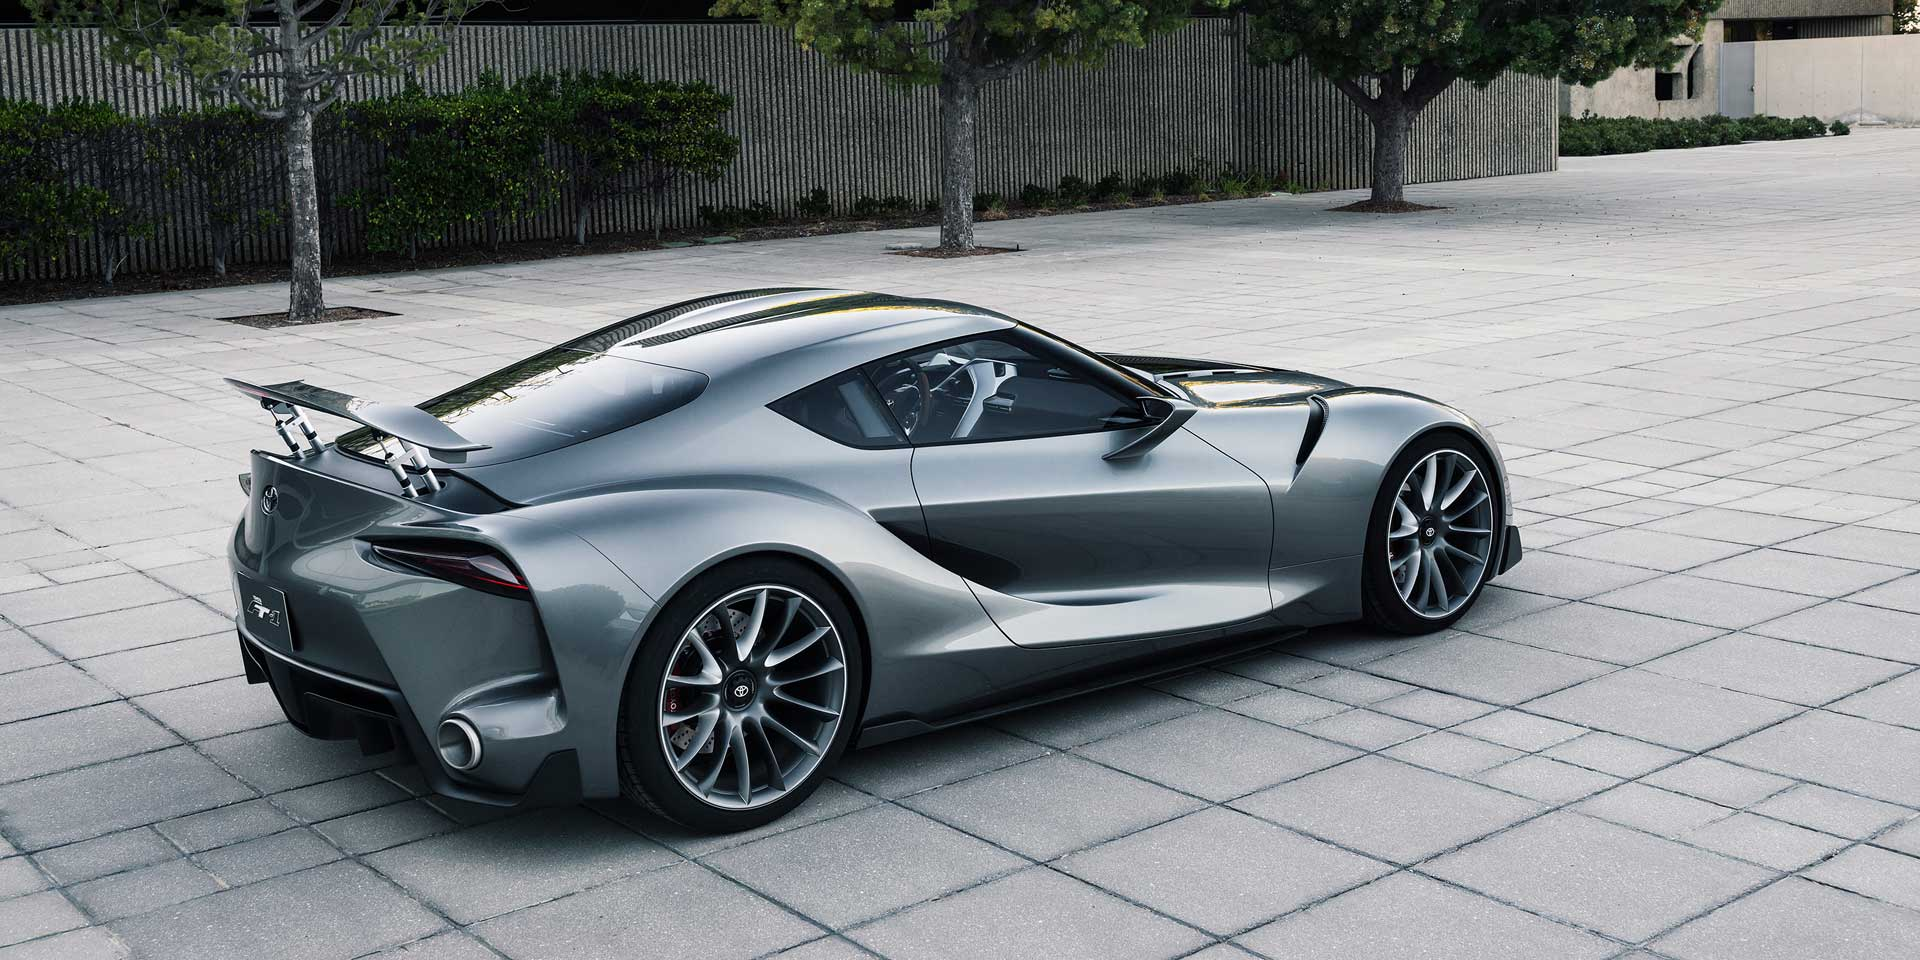 TOYOTA FT 1 CONCEPT: Sports Car Enthusiasts Visiting The 2015 Chicago Auto  Show Will Have The Chance To View Toyotau0027s FT 1 Concept Vehicle.